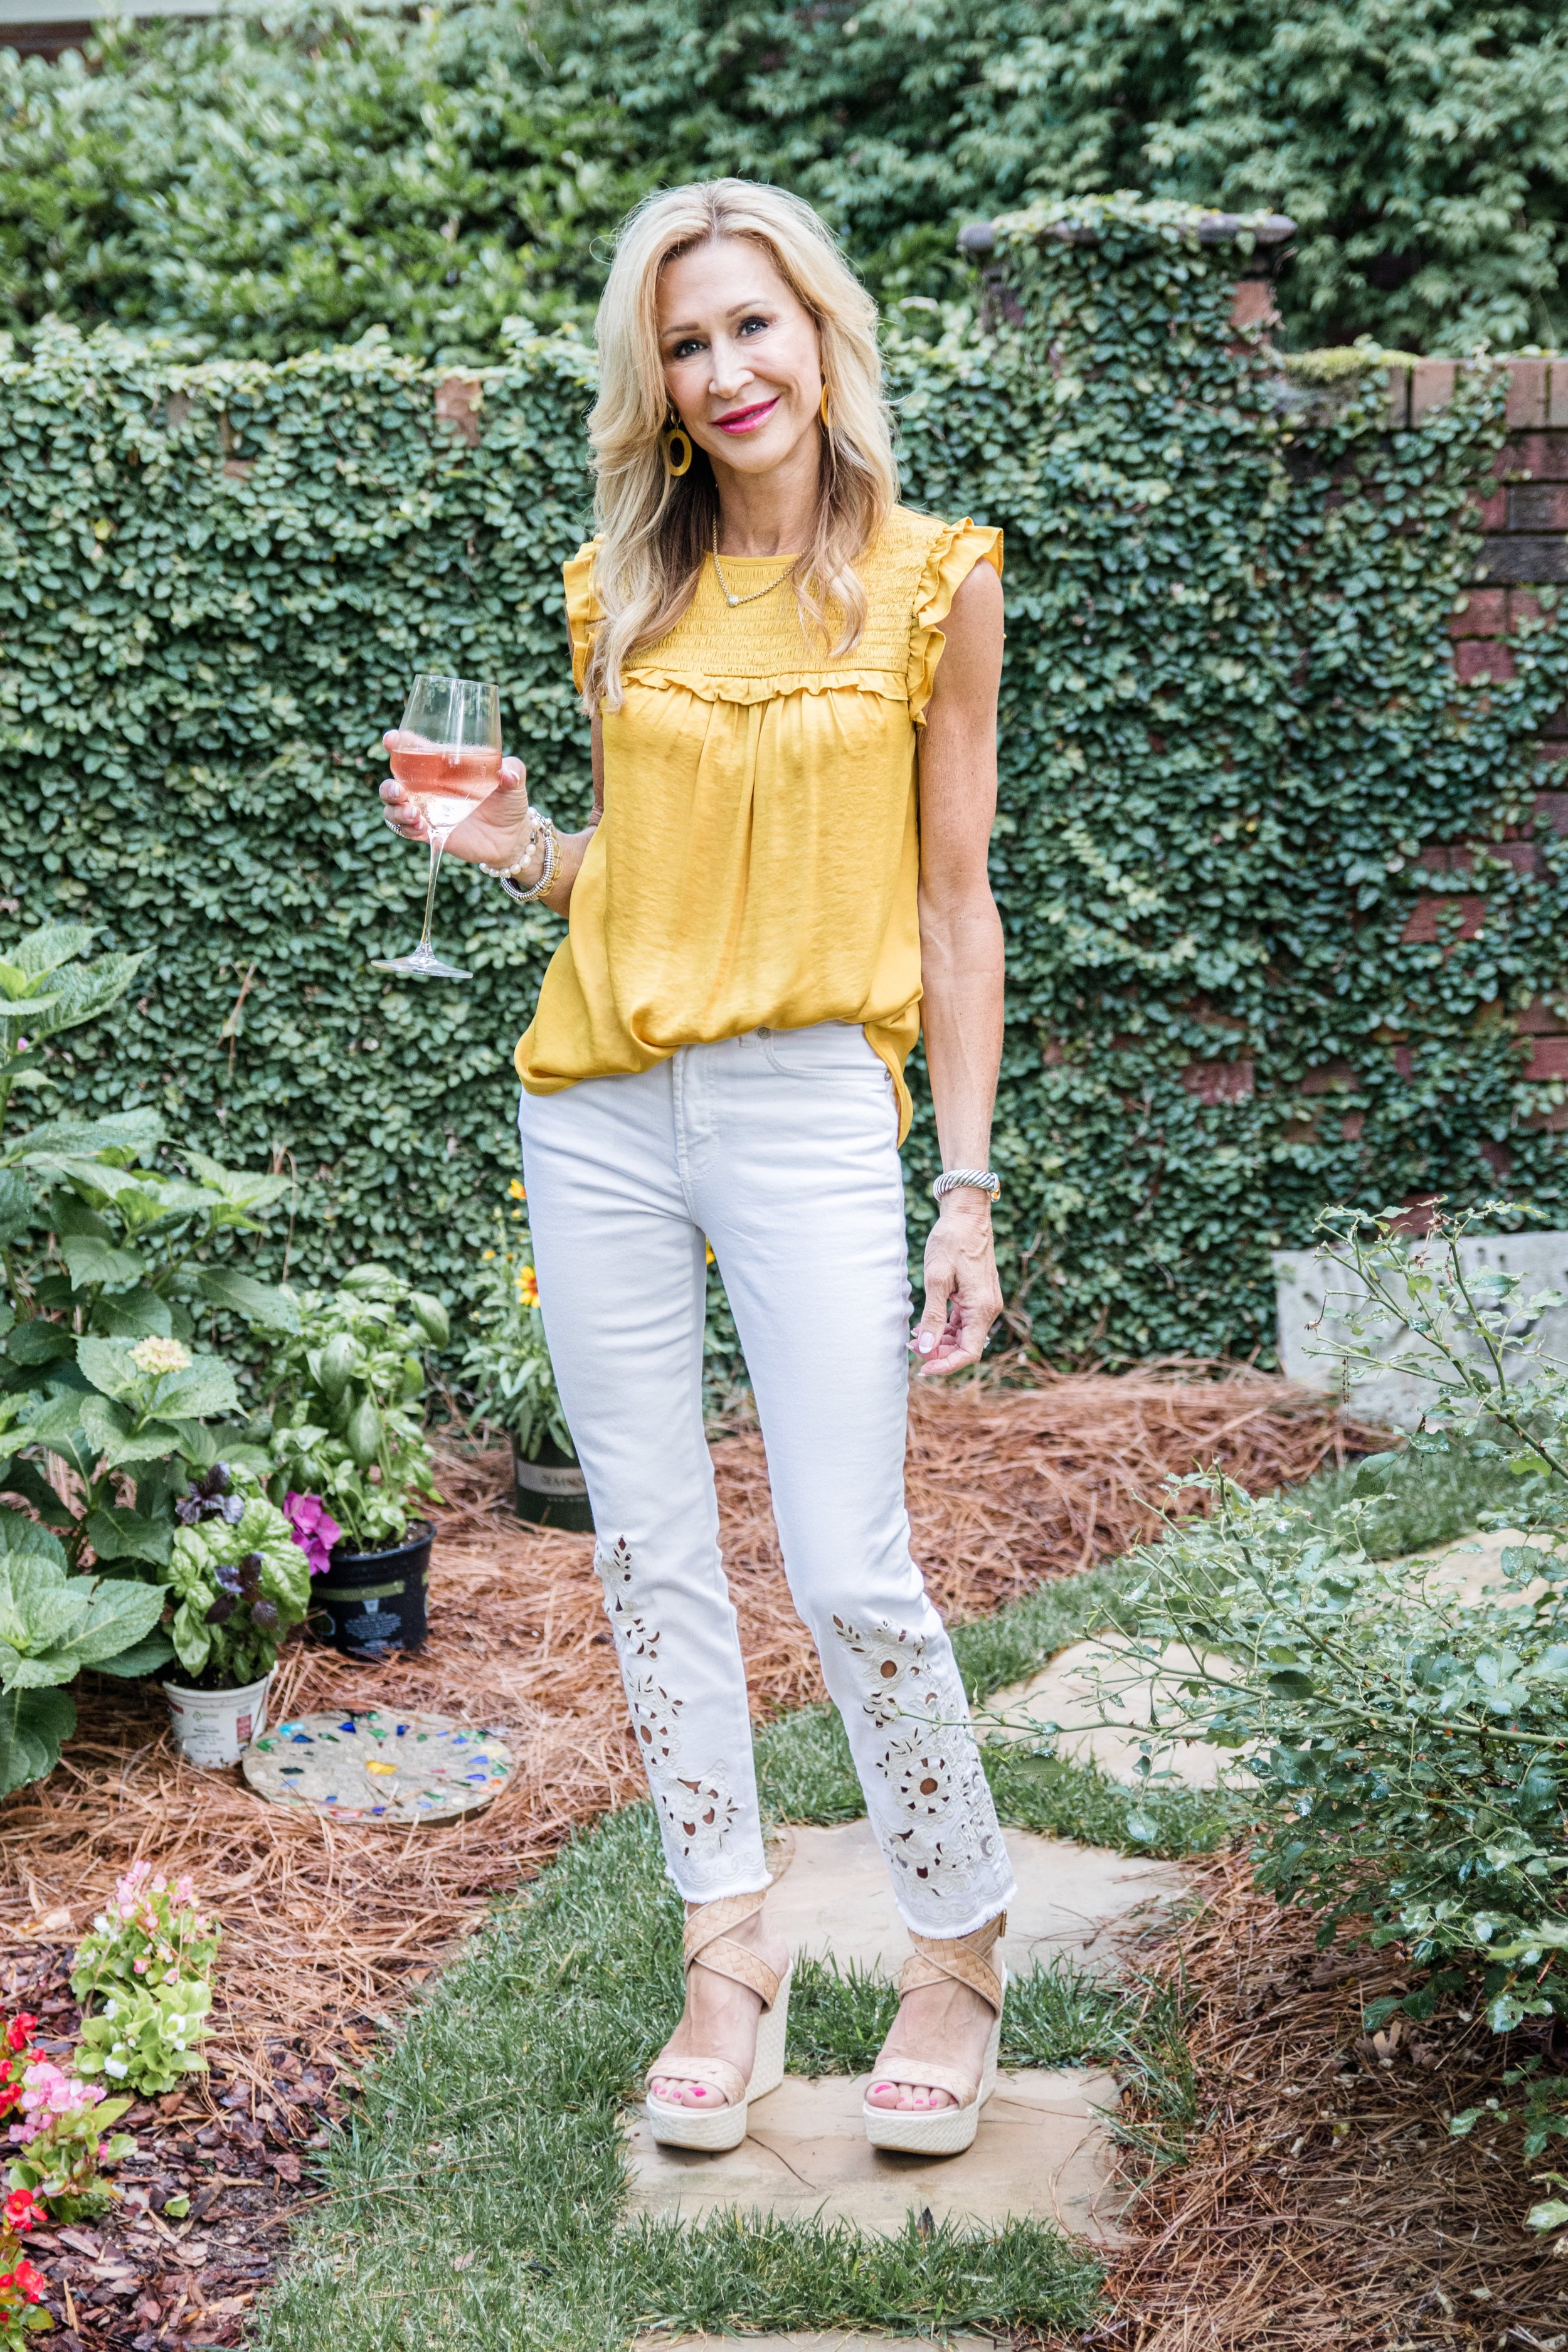 Casual Spring Outfit - Loft top and embroidered jeans with Stuart Weitzman Shoes